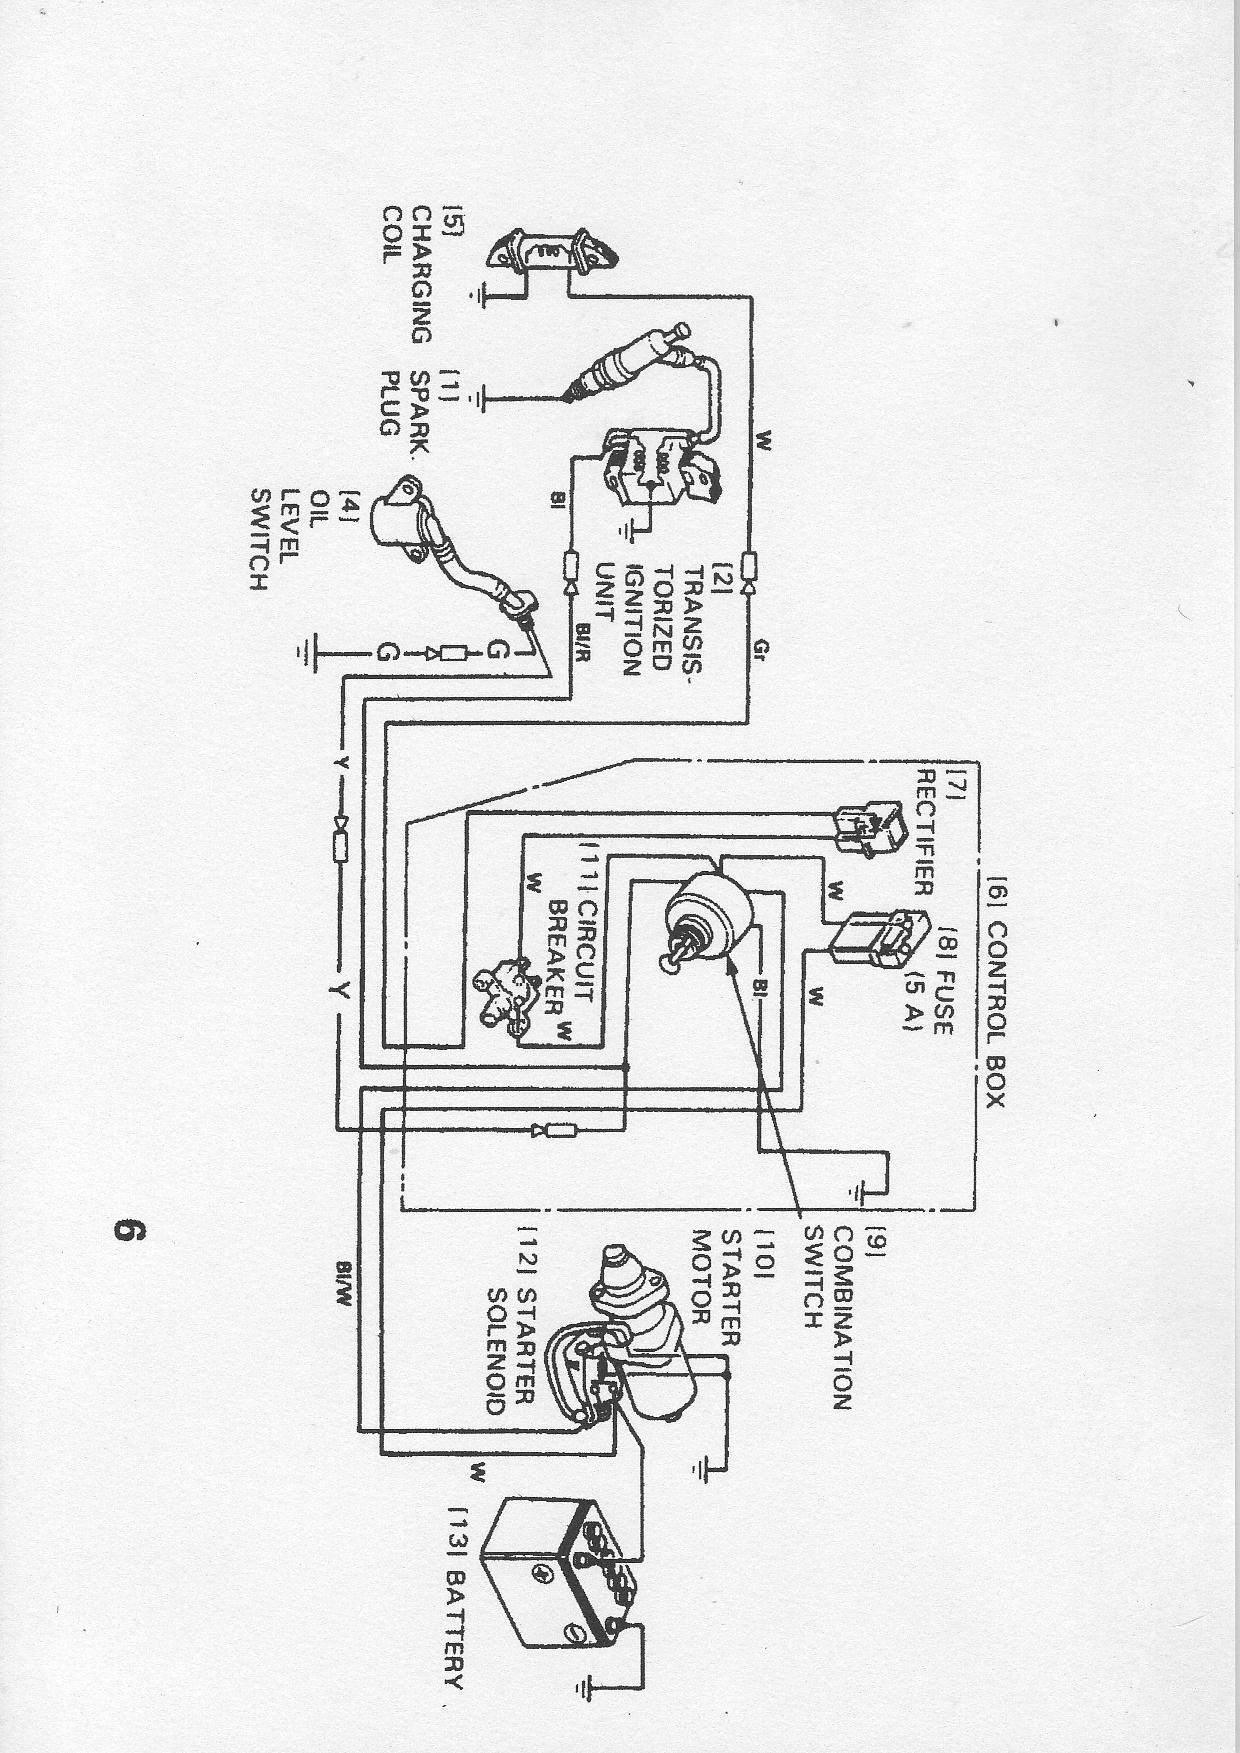 DIAGRAM] Honda Gx390 Starter Switch Wiring Diagram FULL Version HD Quality Wiring  Diagram - GOZOGUIDEBOOK.COMELUXITALIA.ITWiring Diagram Database